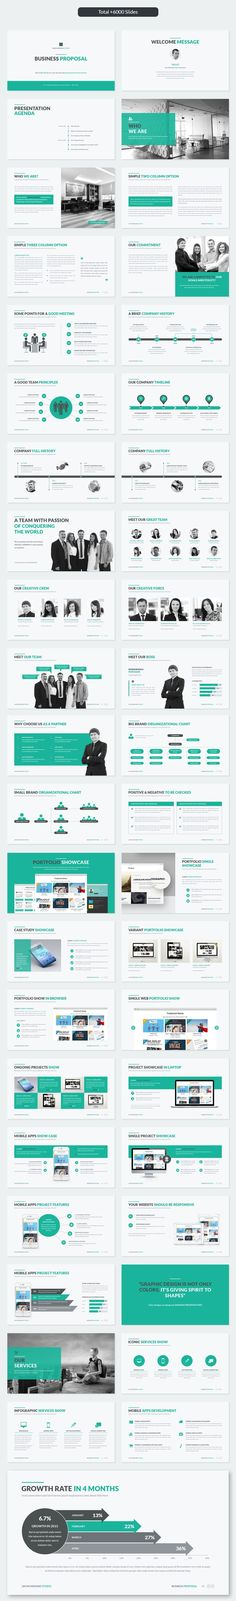 Business infographic : Showcase and discover creative work on the world's leading online platform f